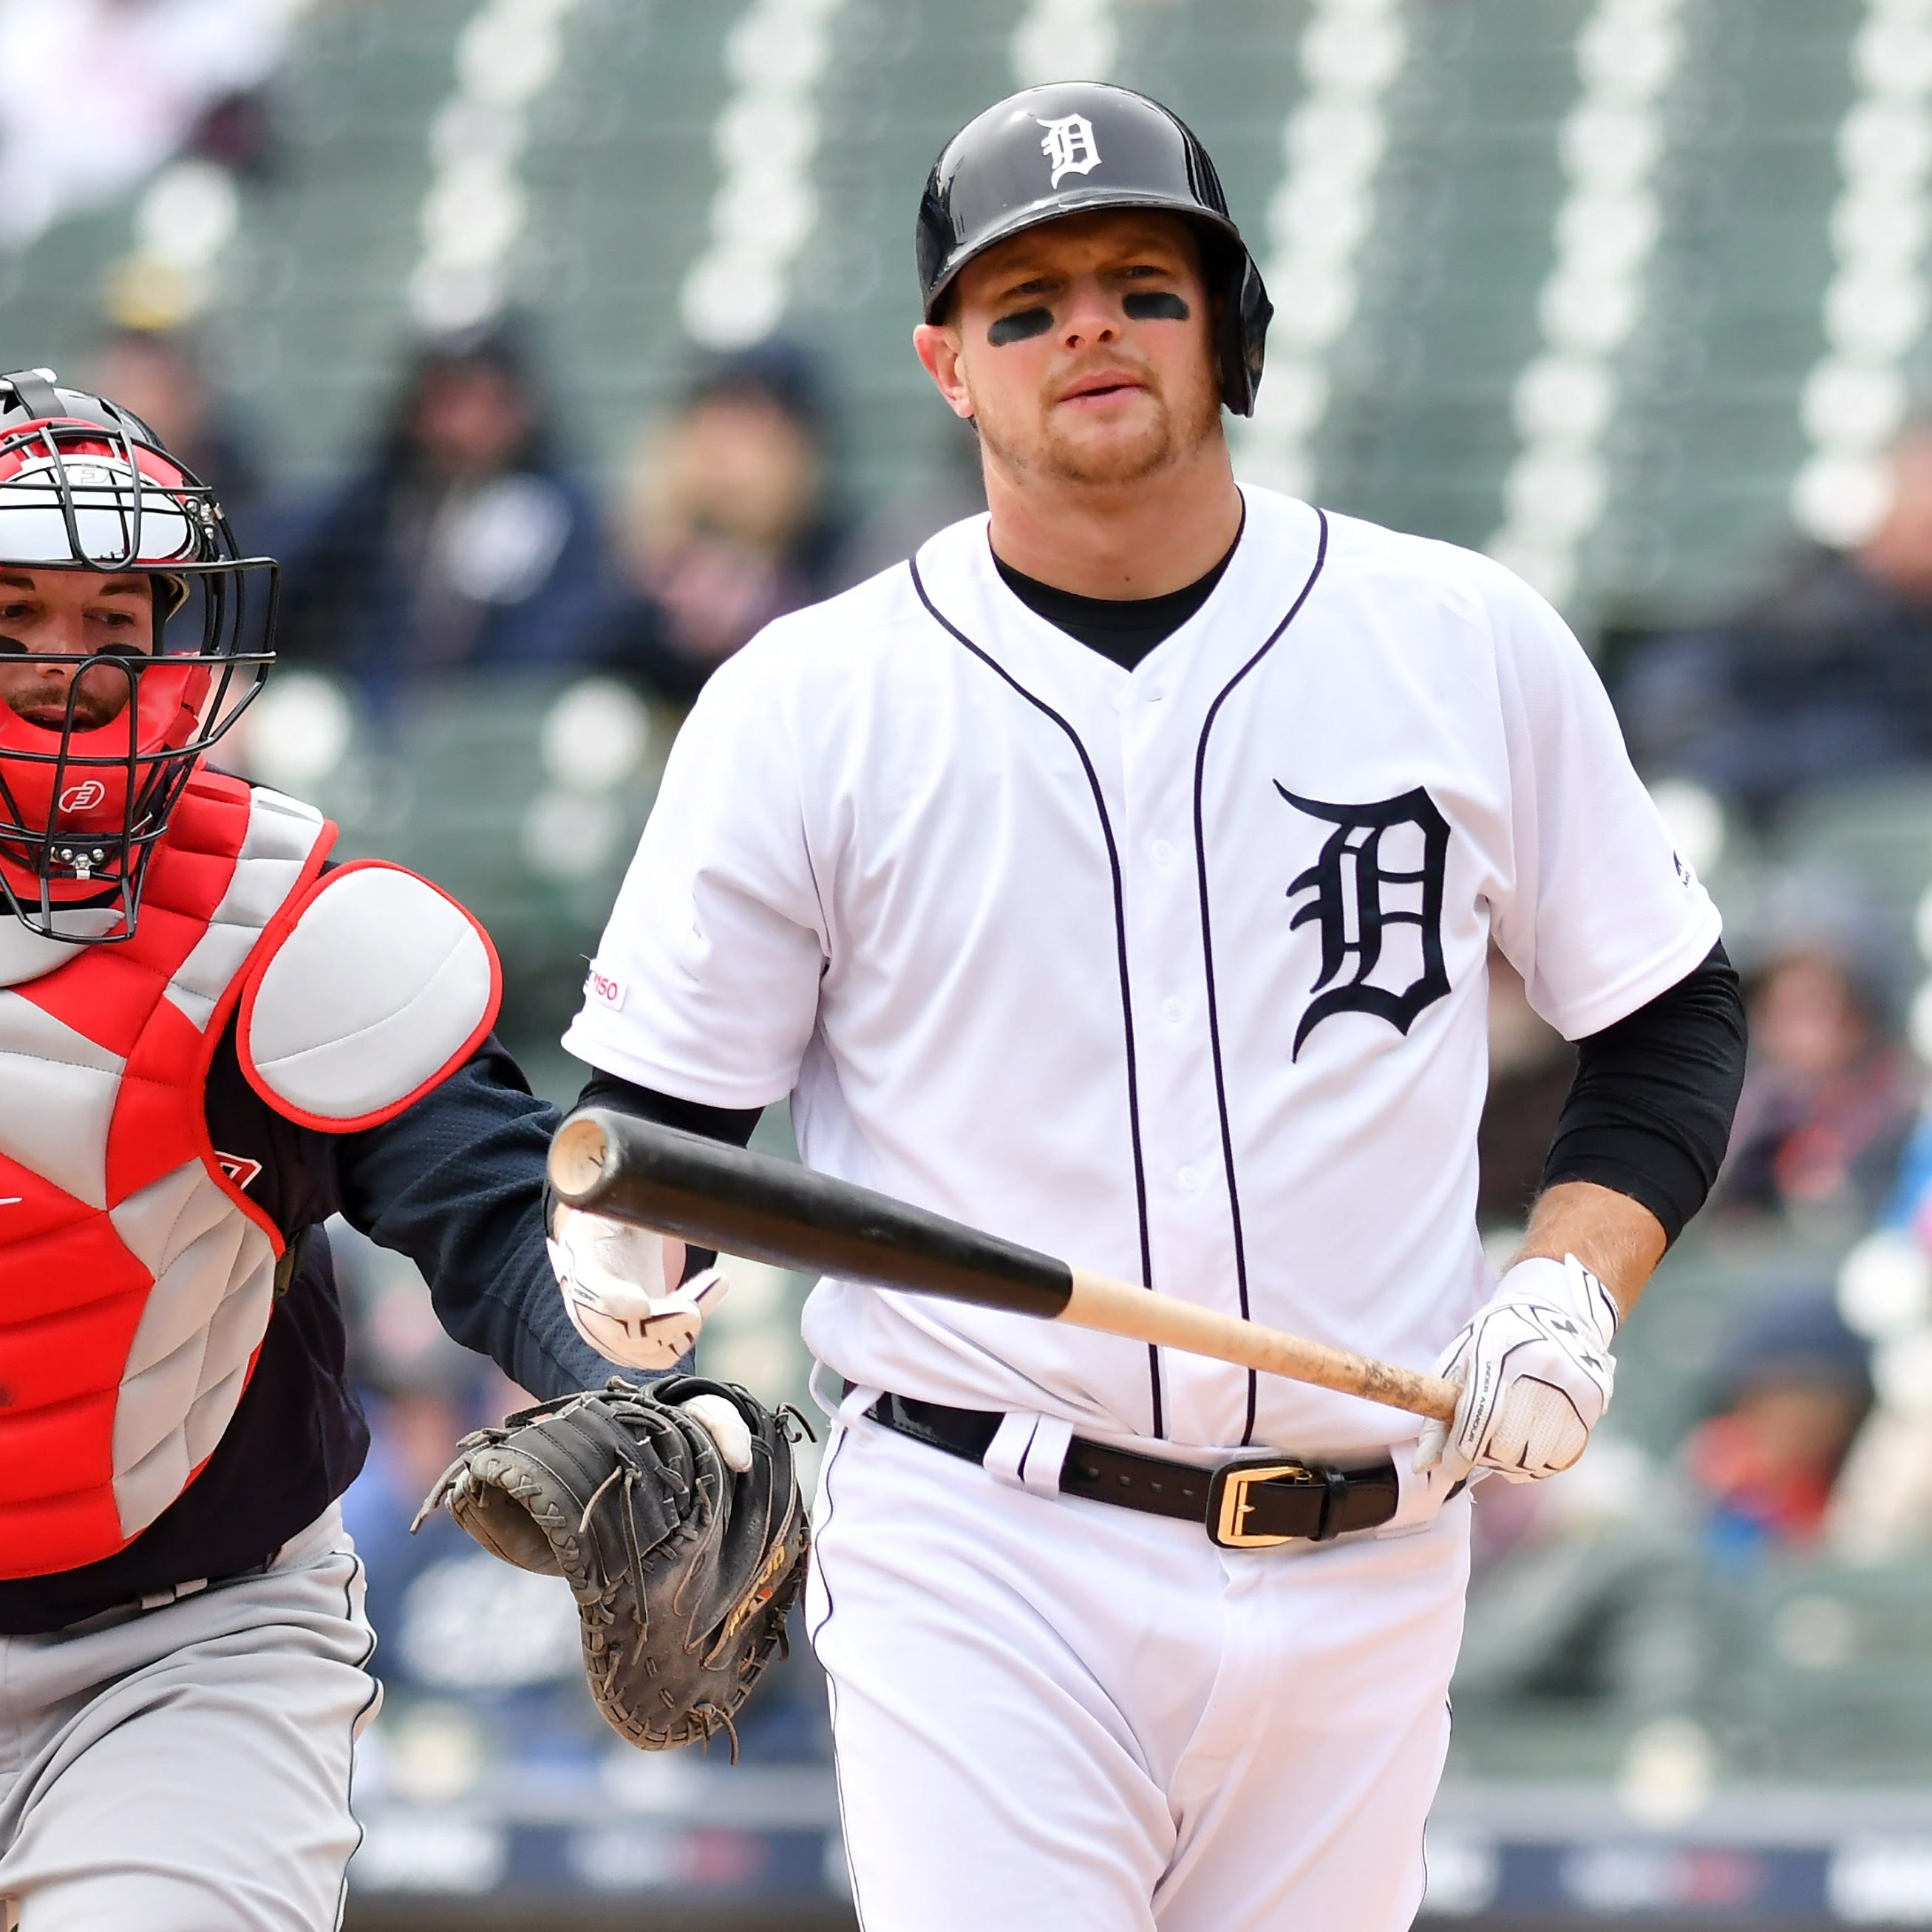 'We're pressing a lot': Tigers' MLB-worst chase rate testing Gardenhire's patience